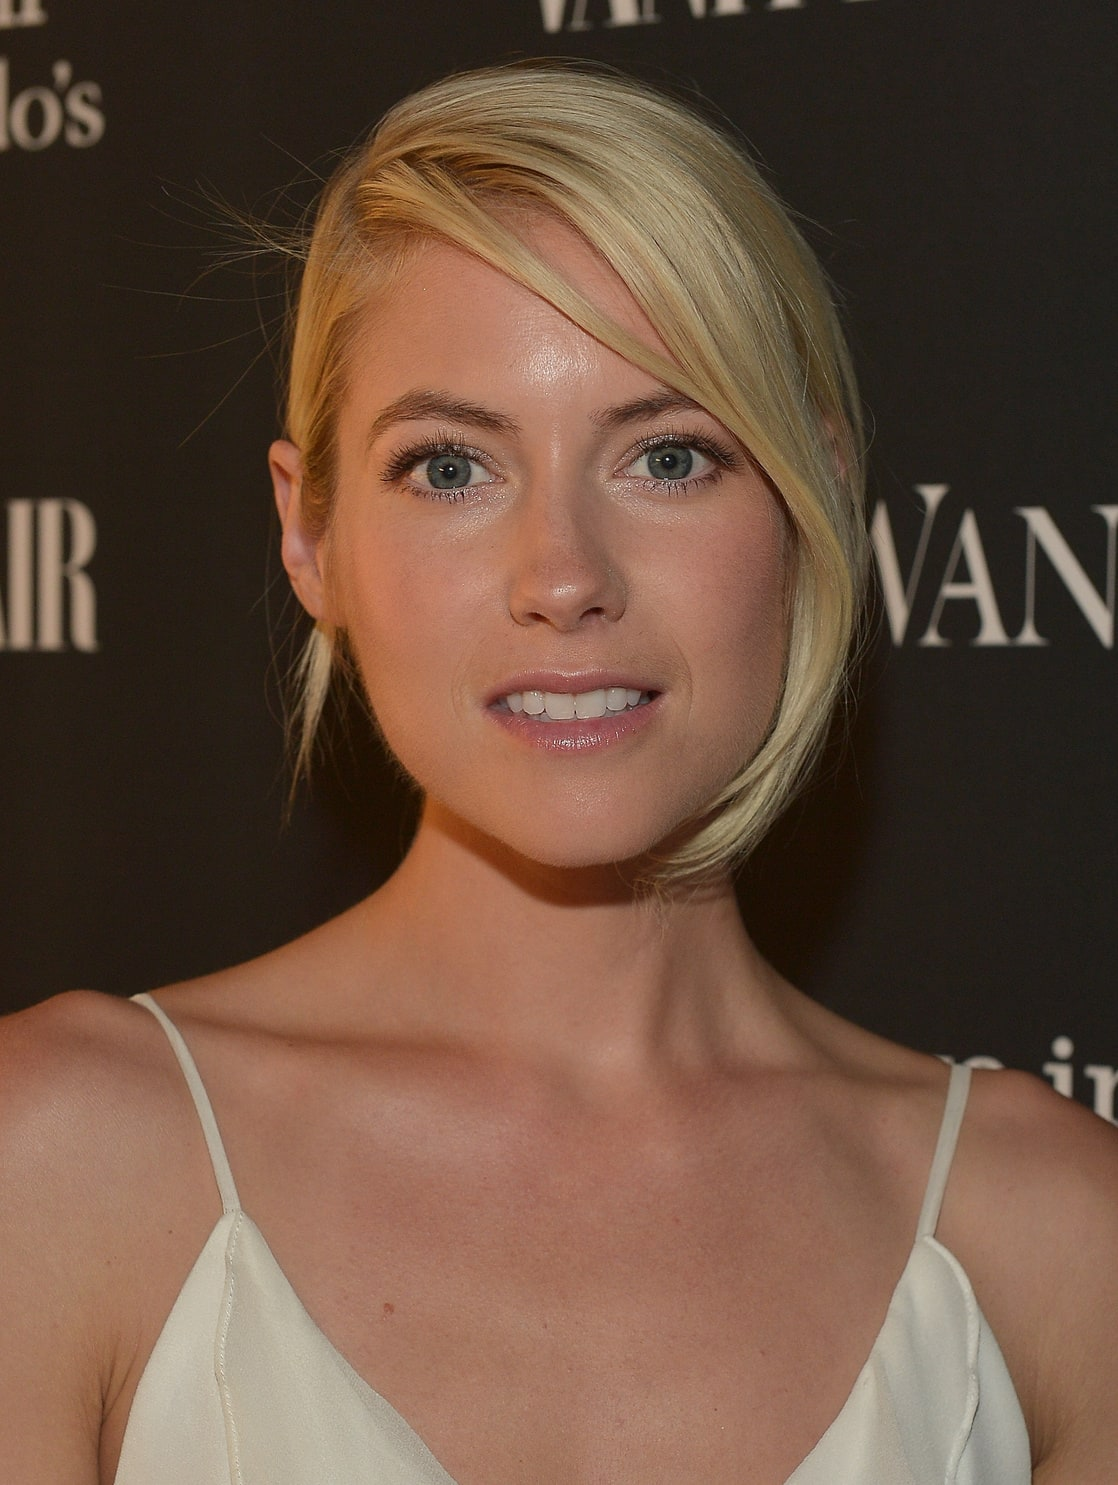 Laura Ramsey nudes (85 foto and video), Sexy, Fappening, Instagram, swimsuit 2006